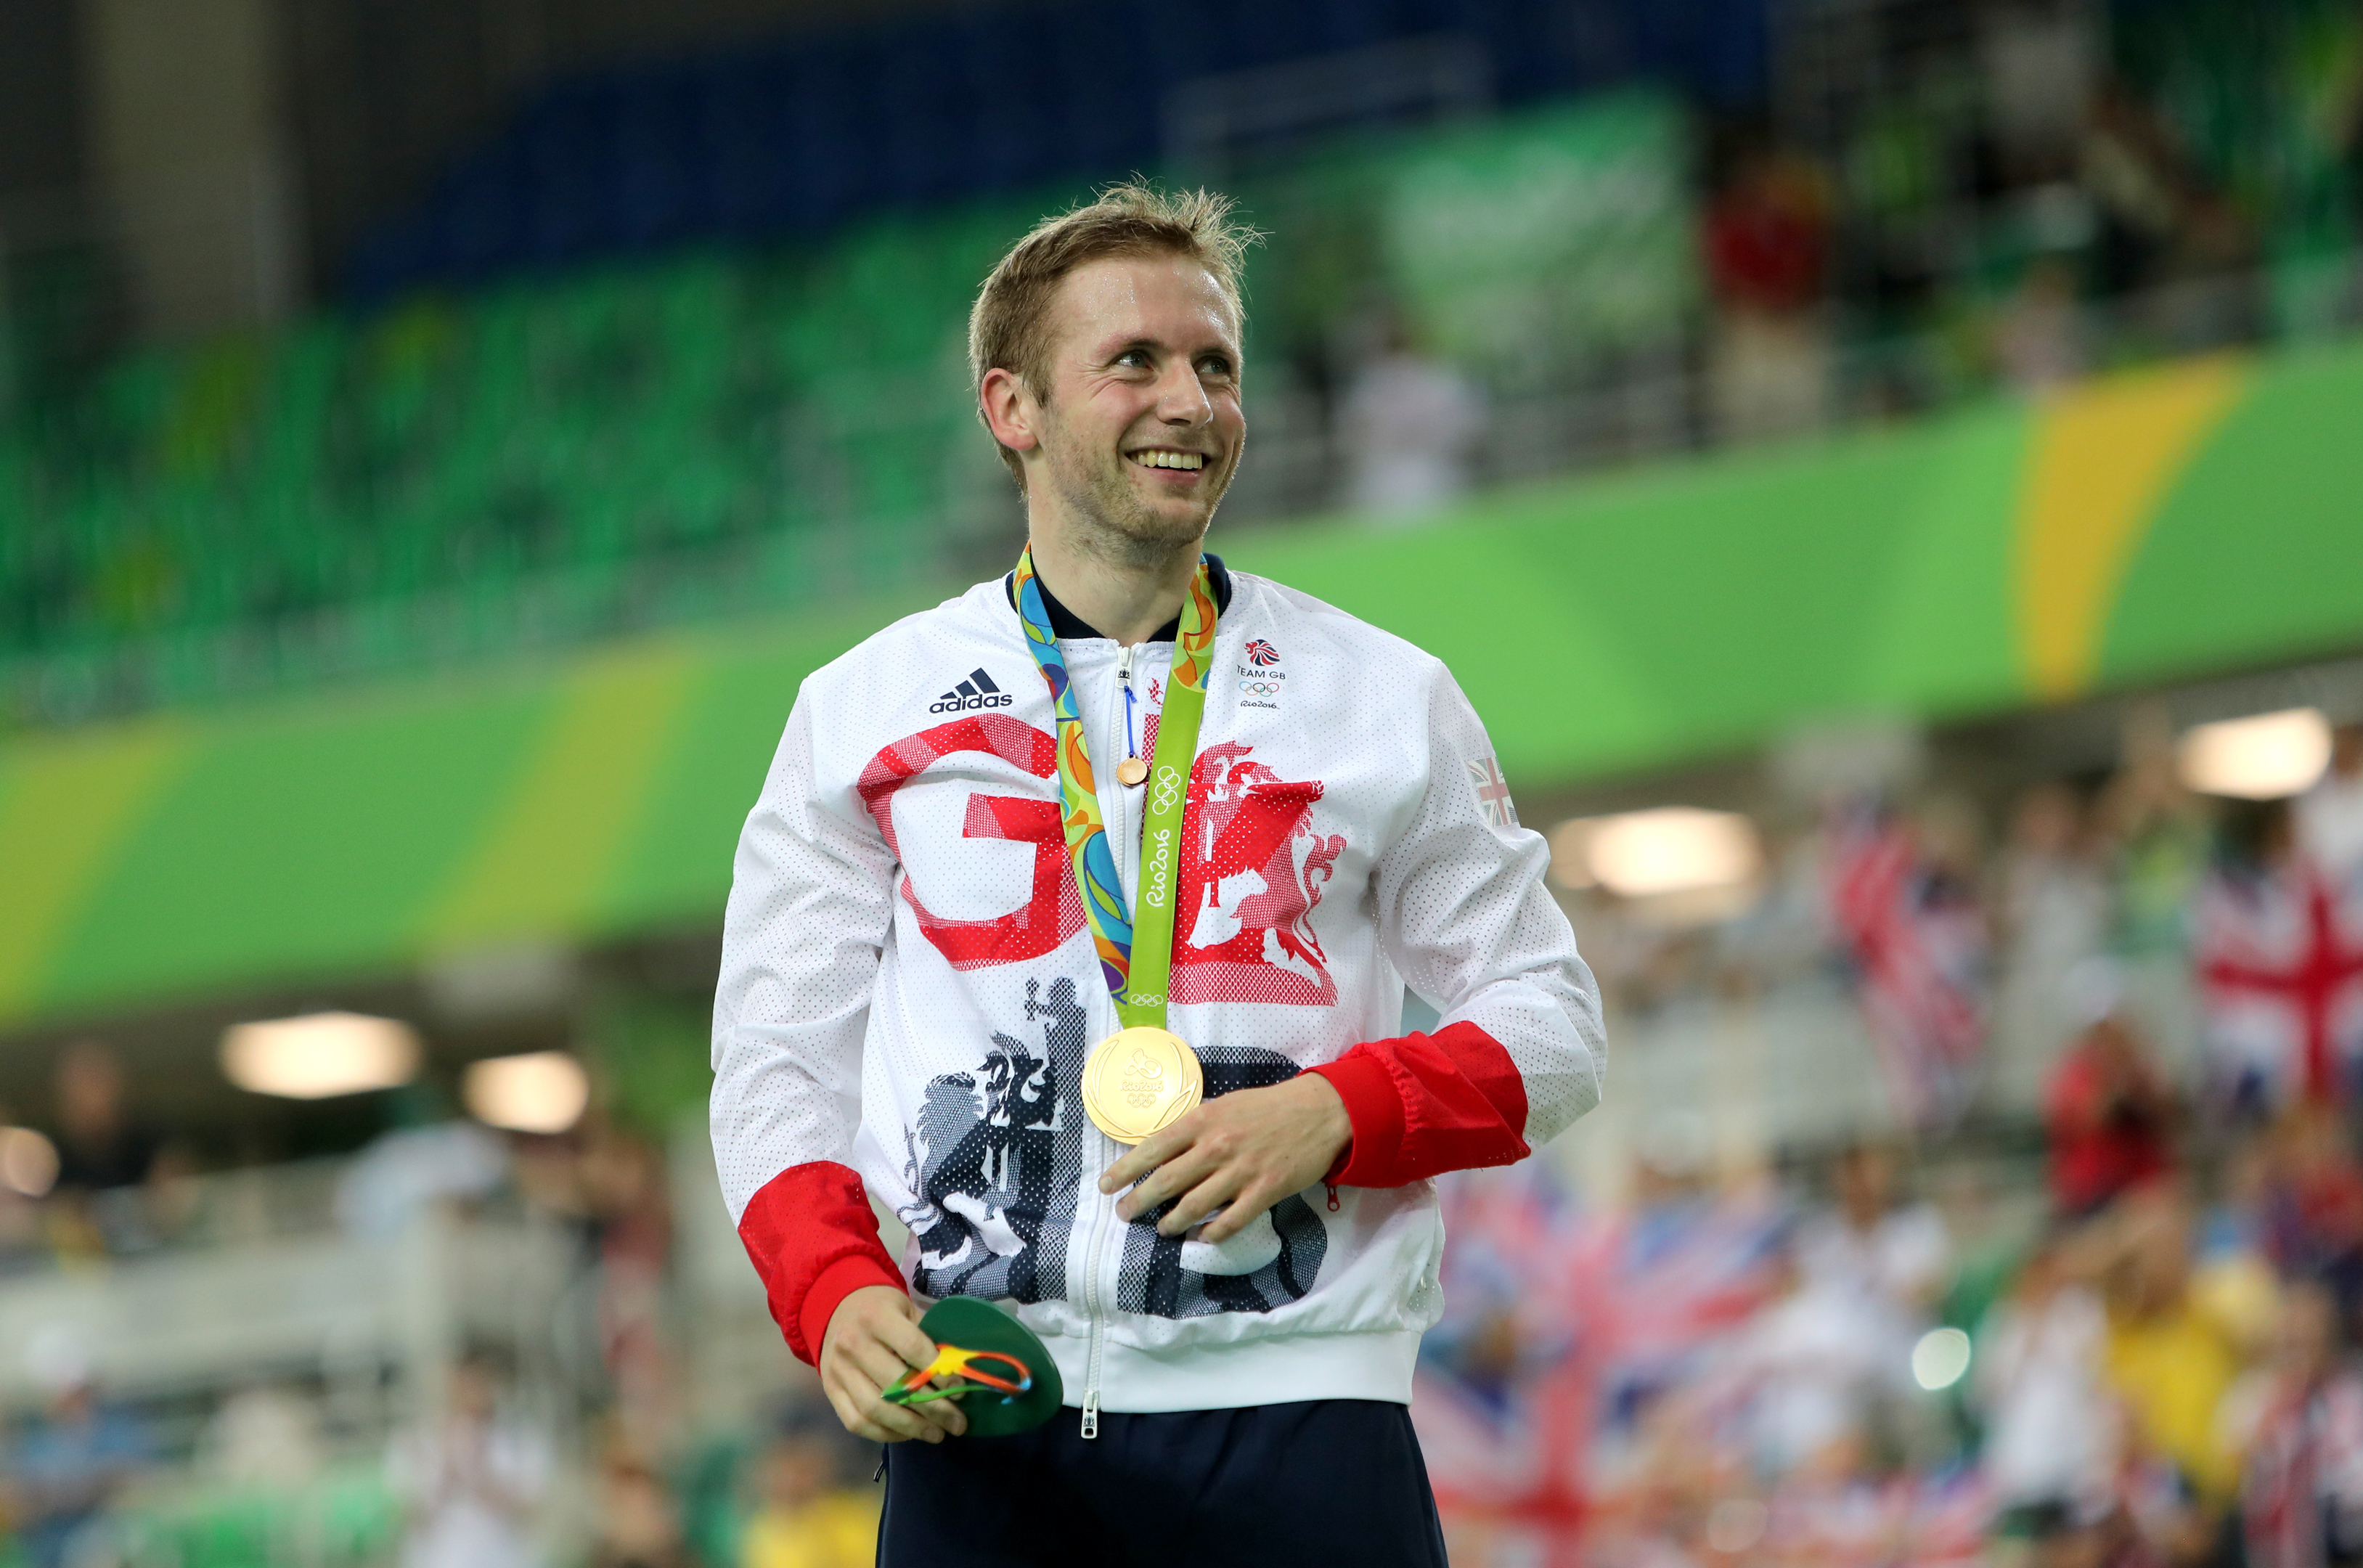 Great Britain's Jason Kenny on the podium after winning the gold medal in the Men's Keirin Final at the Rio Olympic Velodrome (PA)